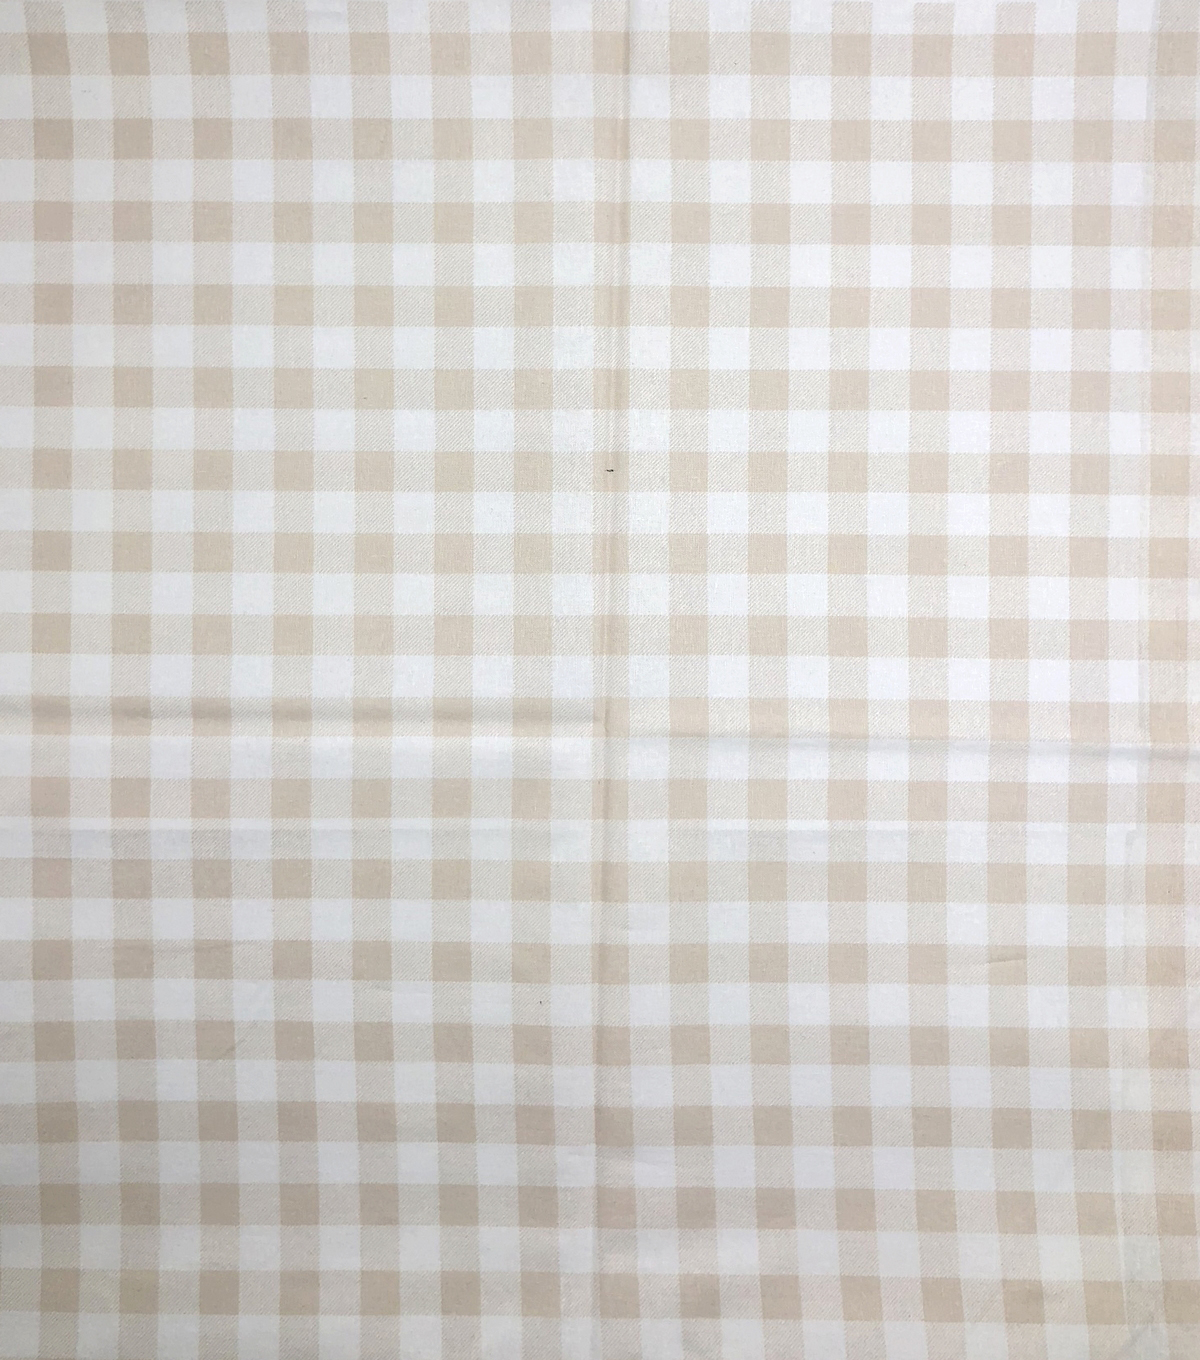 Keepsake Calico Cotton Fabric-Buffalo Check Tan & White